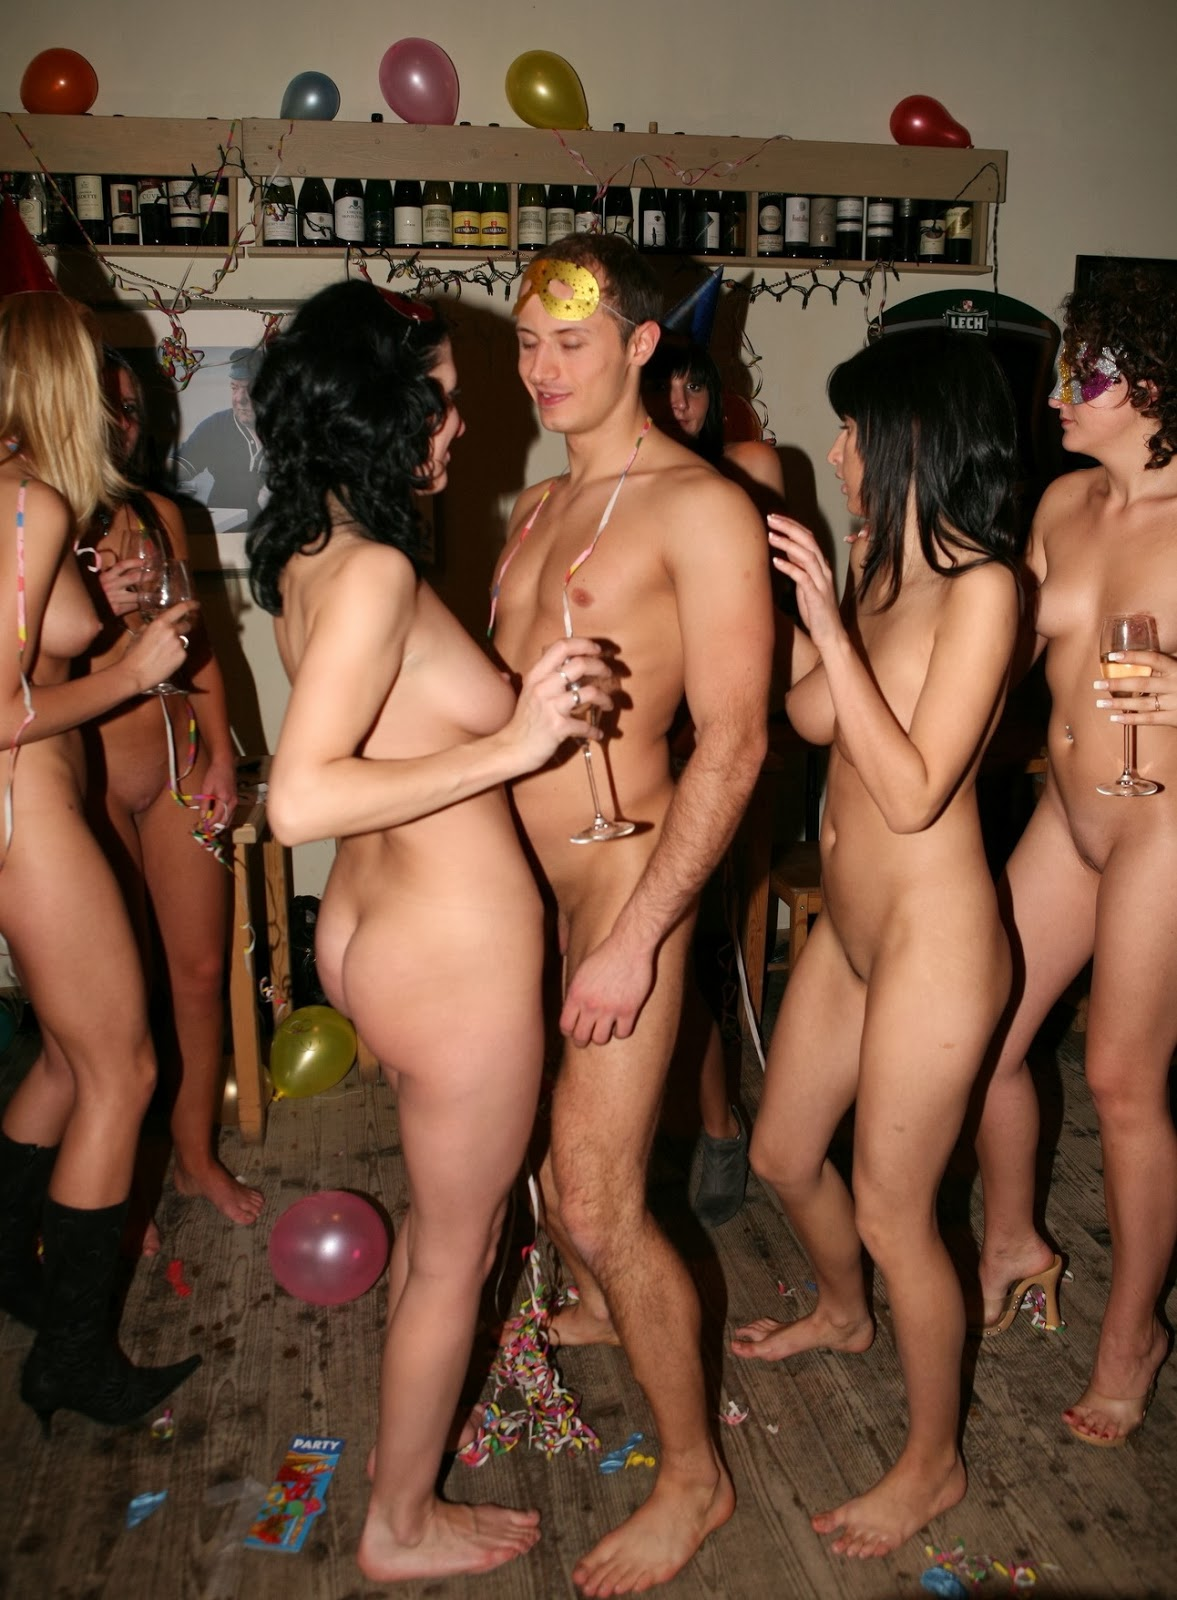 Wanna nude party